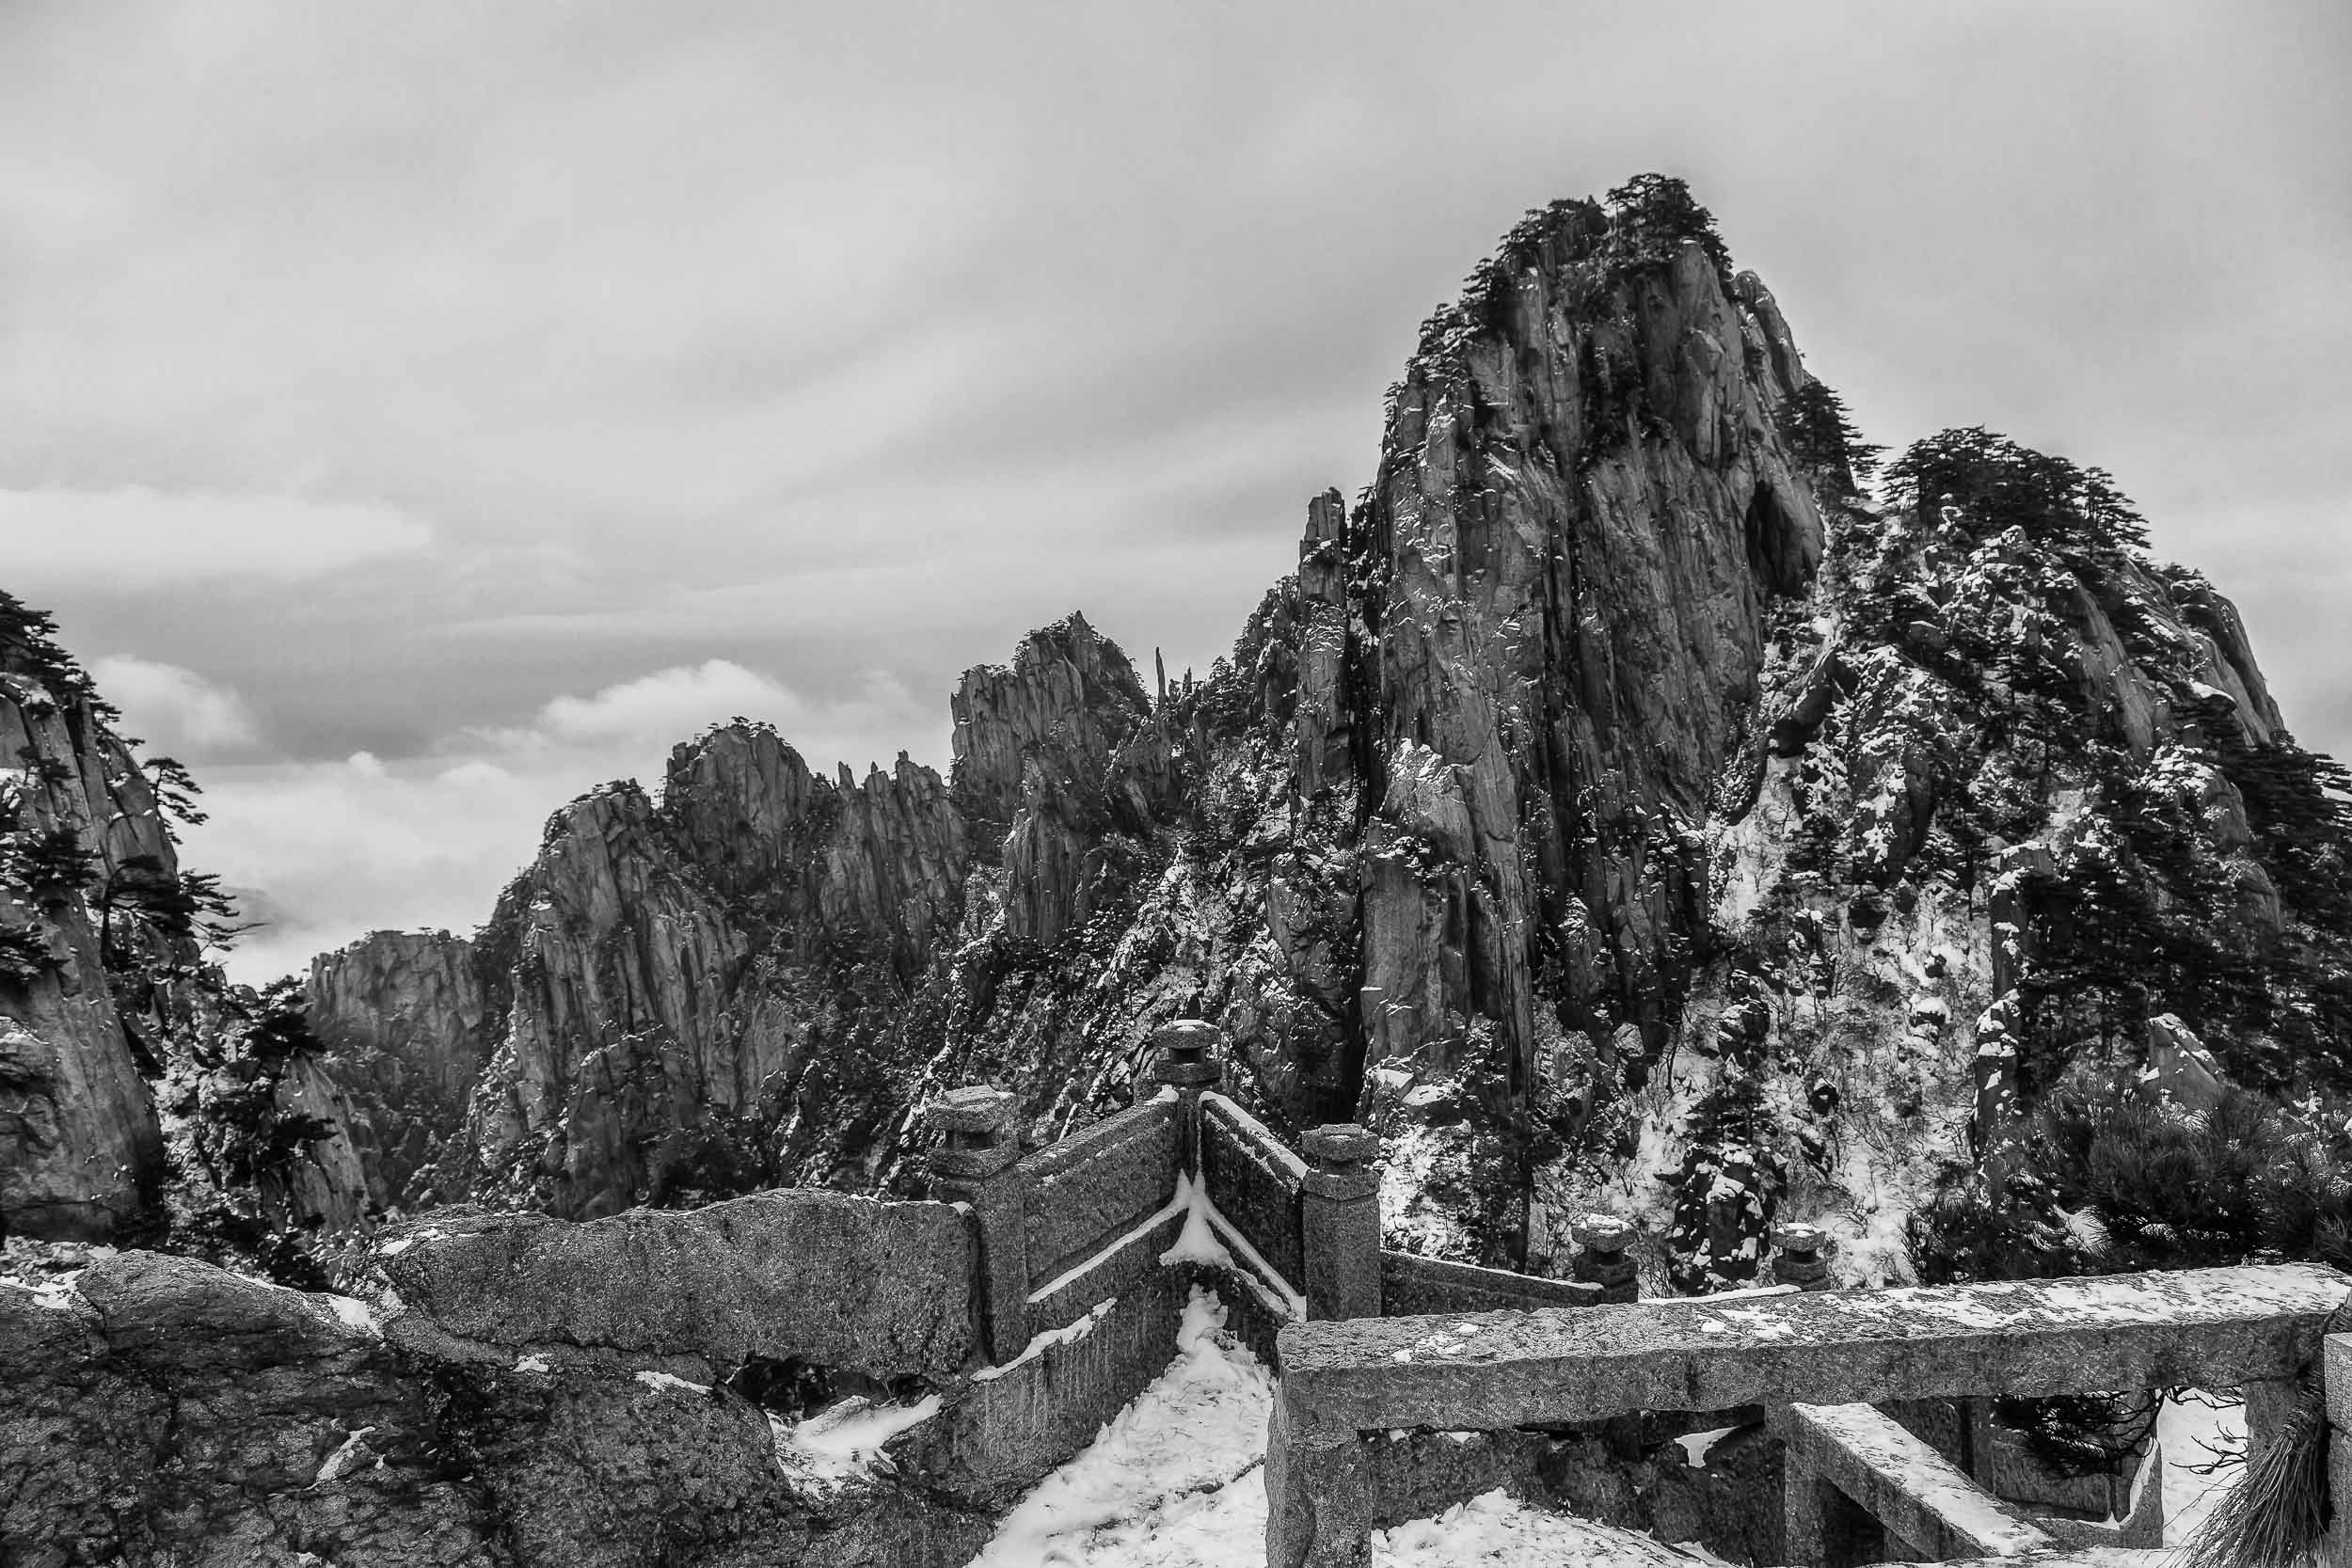 A spectacular and    rugged range of peaks    photograhed from an outlook on    Huangshan    (i.e., Yellow Mountain) in    China   .